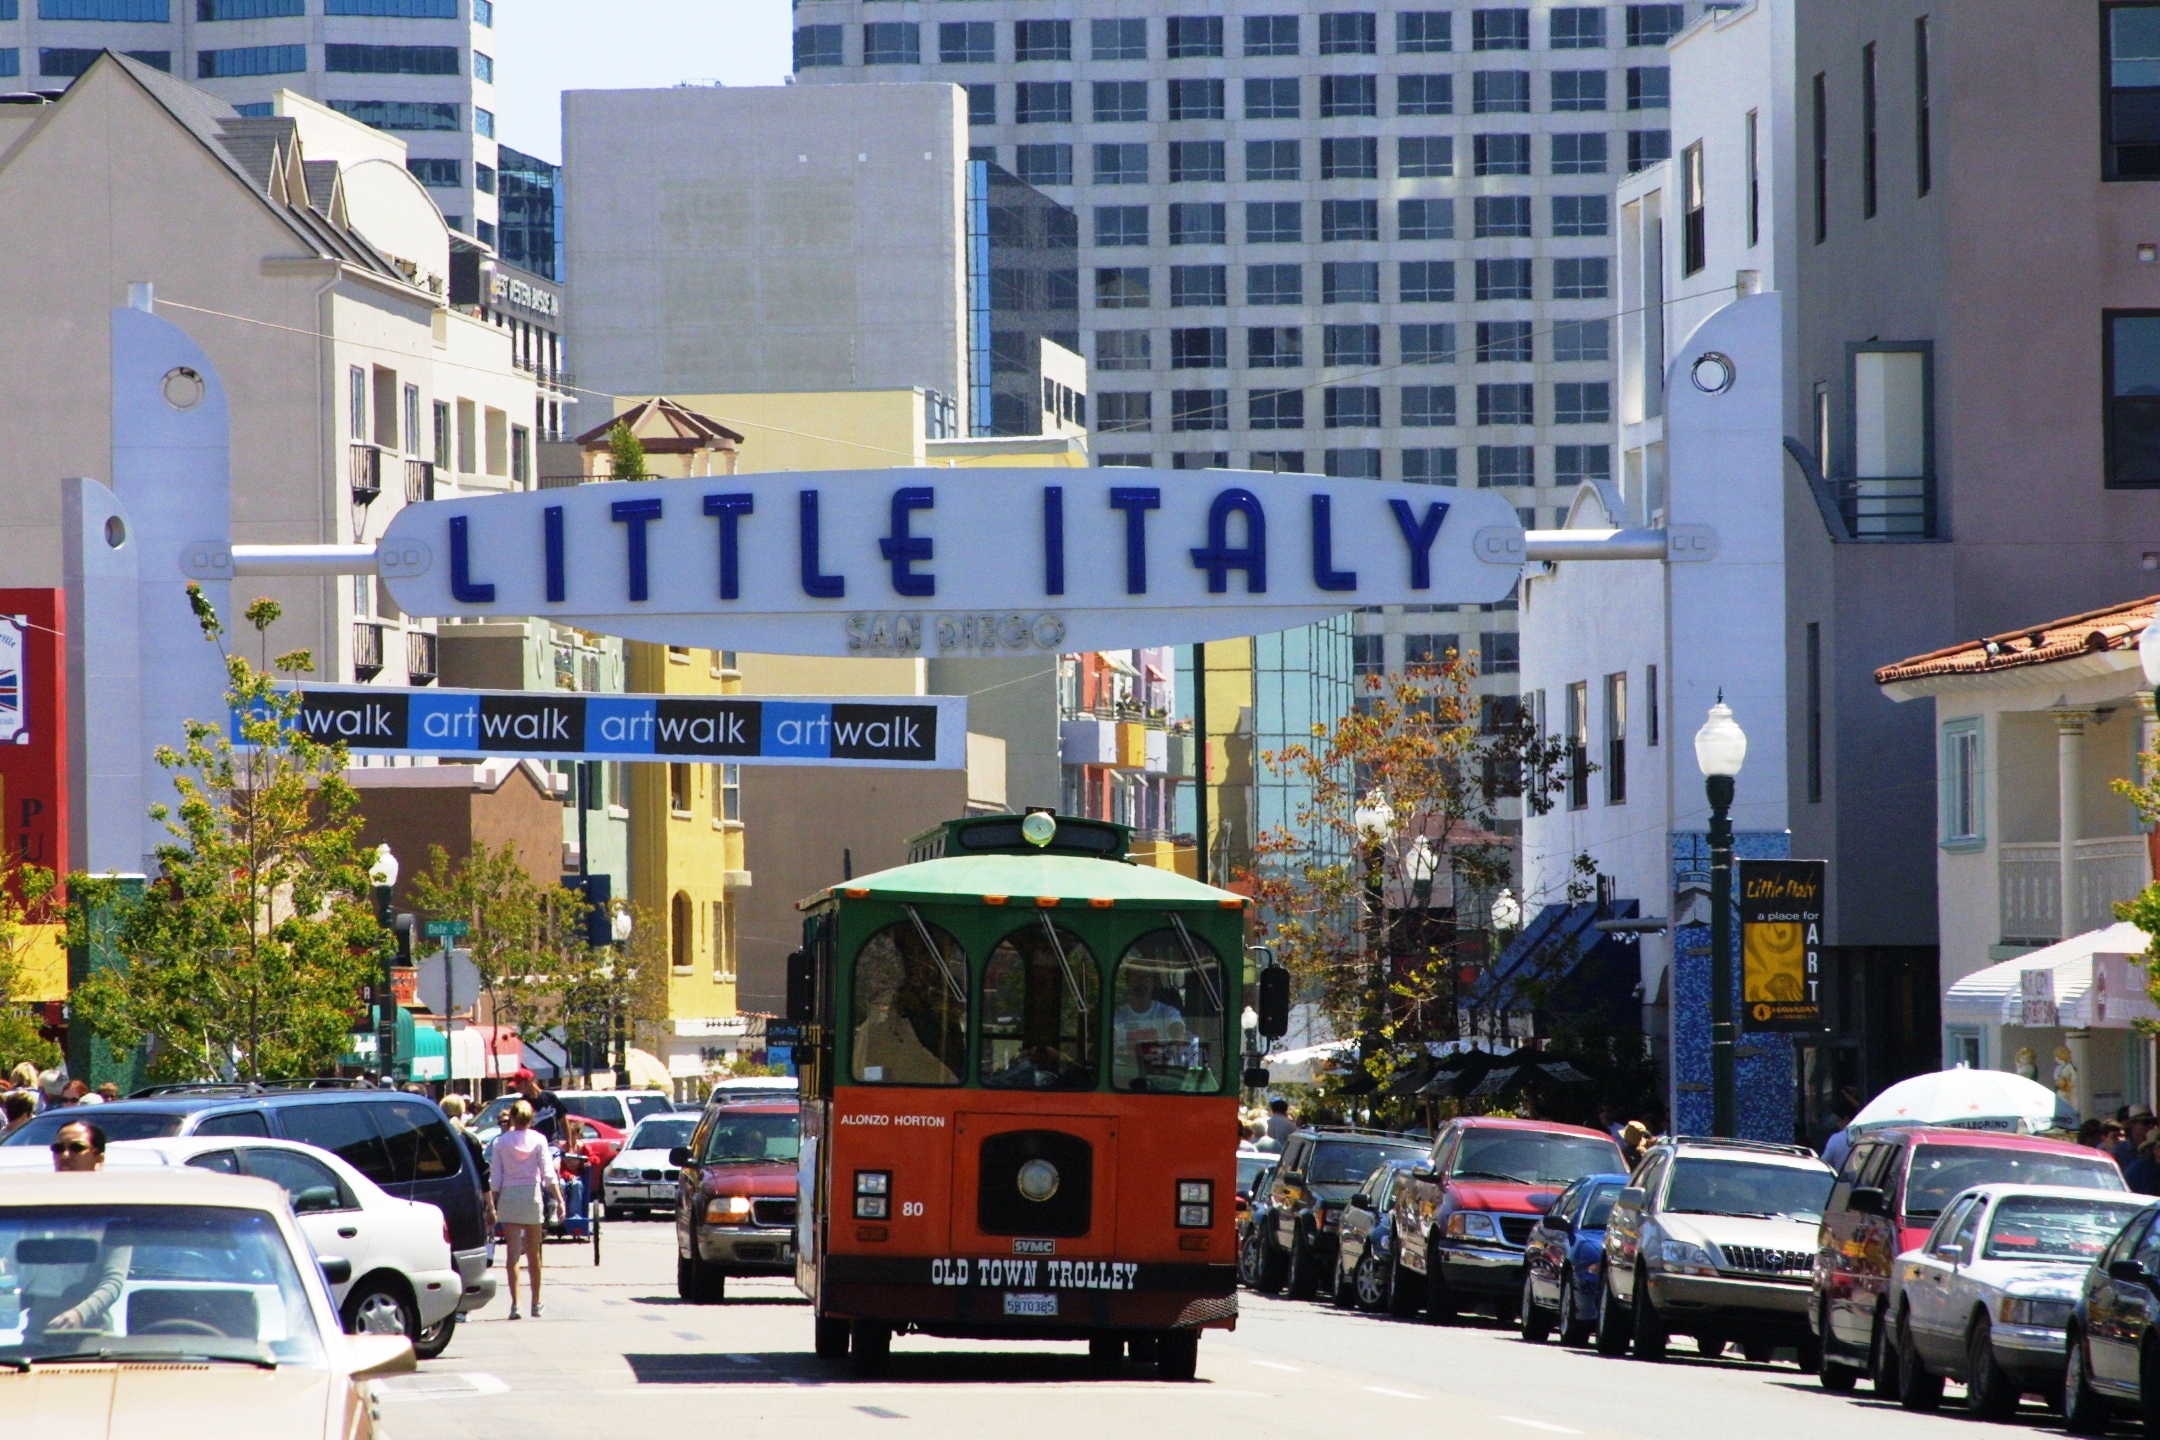 downtown-little-italy-trolley-courtesy-joanne-dibona-sandiego-org